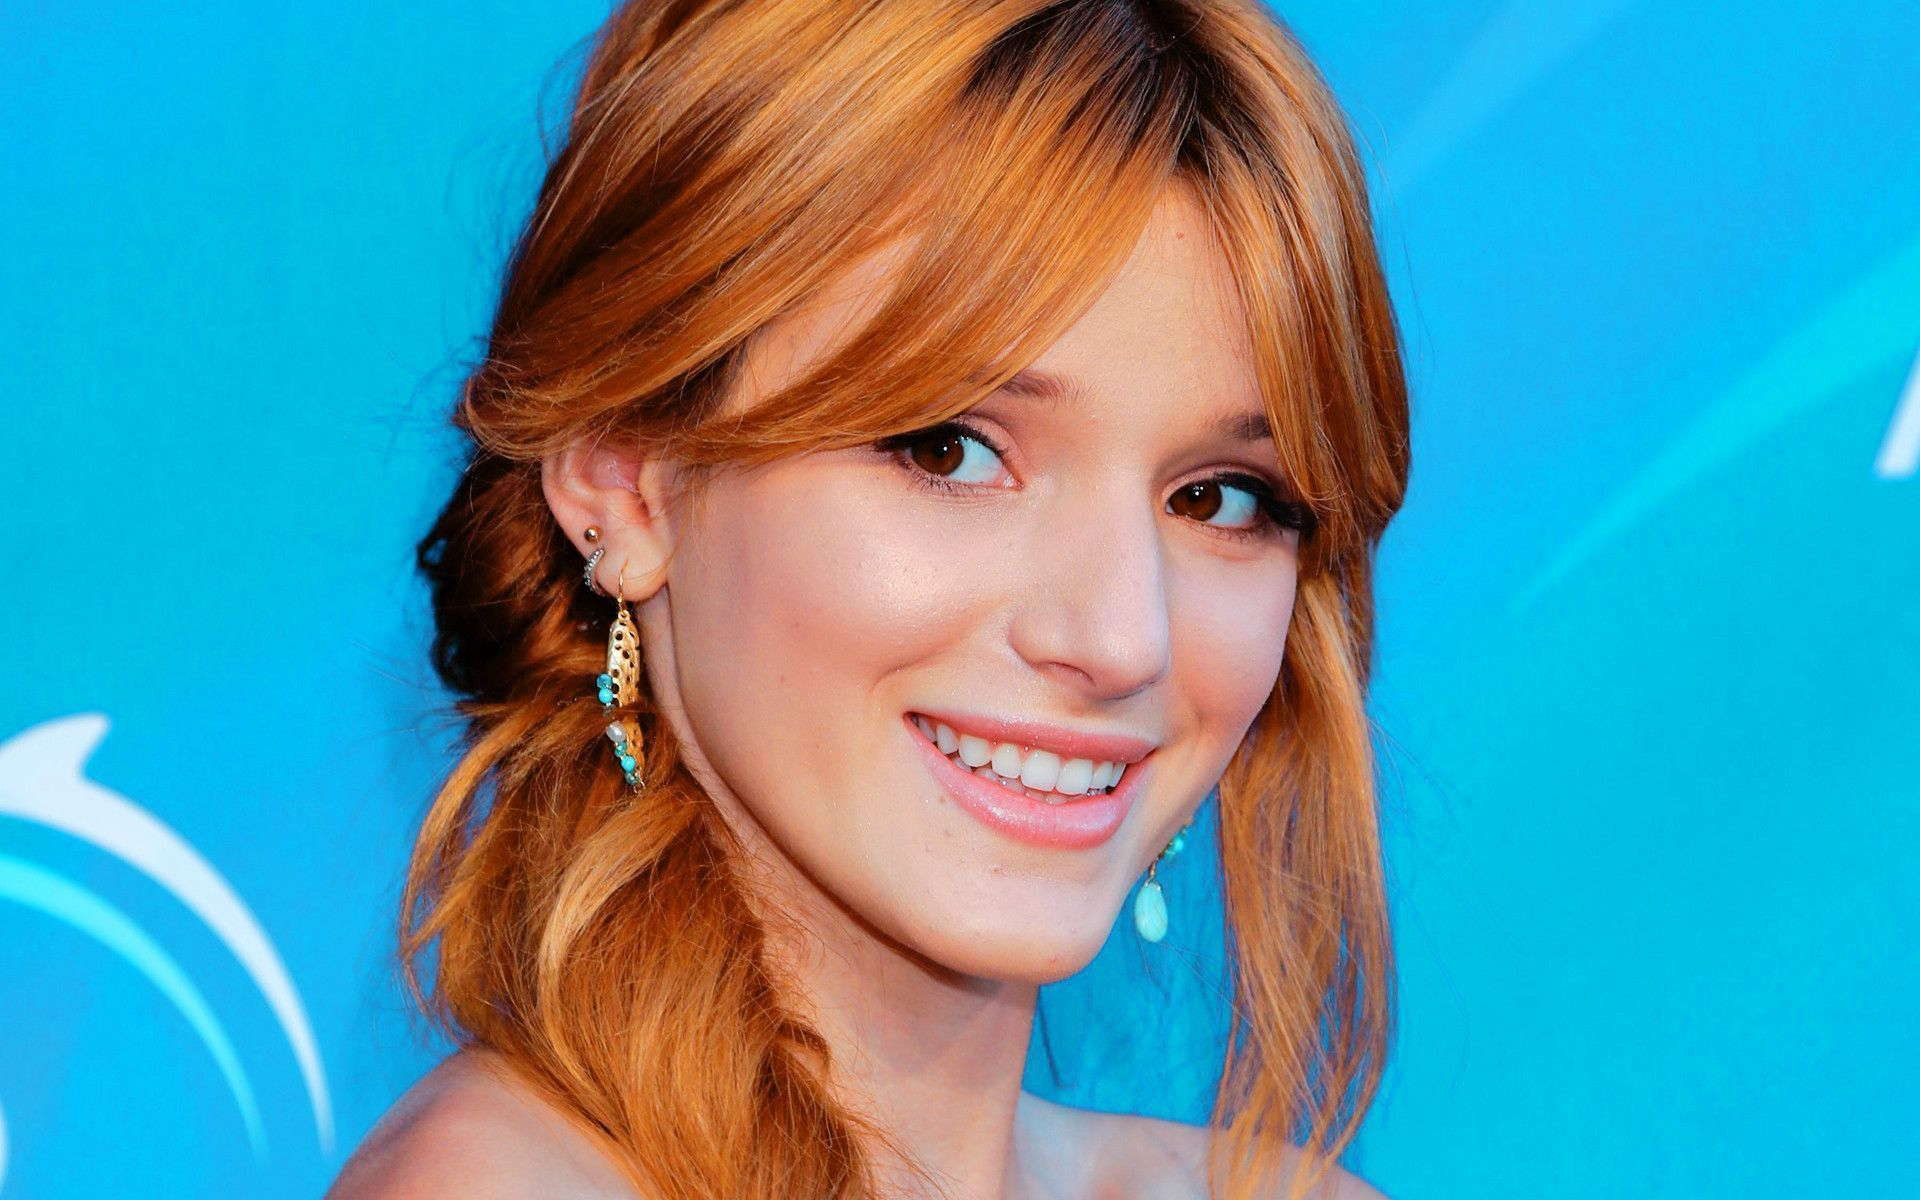 Disney Cars Wallpaper Free Download Bella Thorne Wallpapers Backgrounds